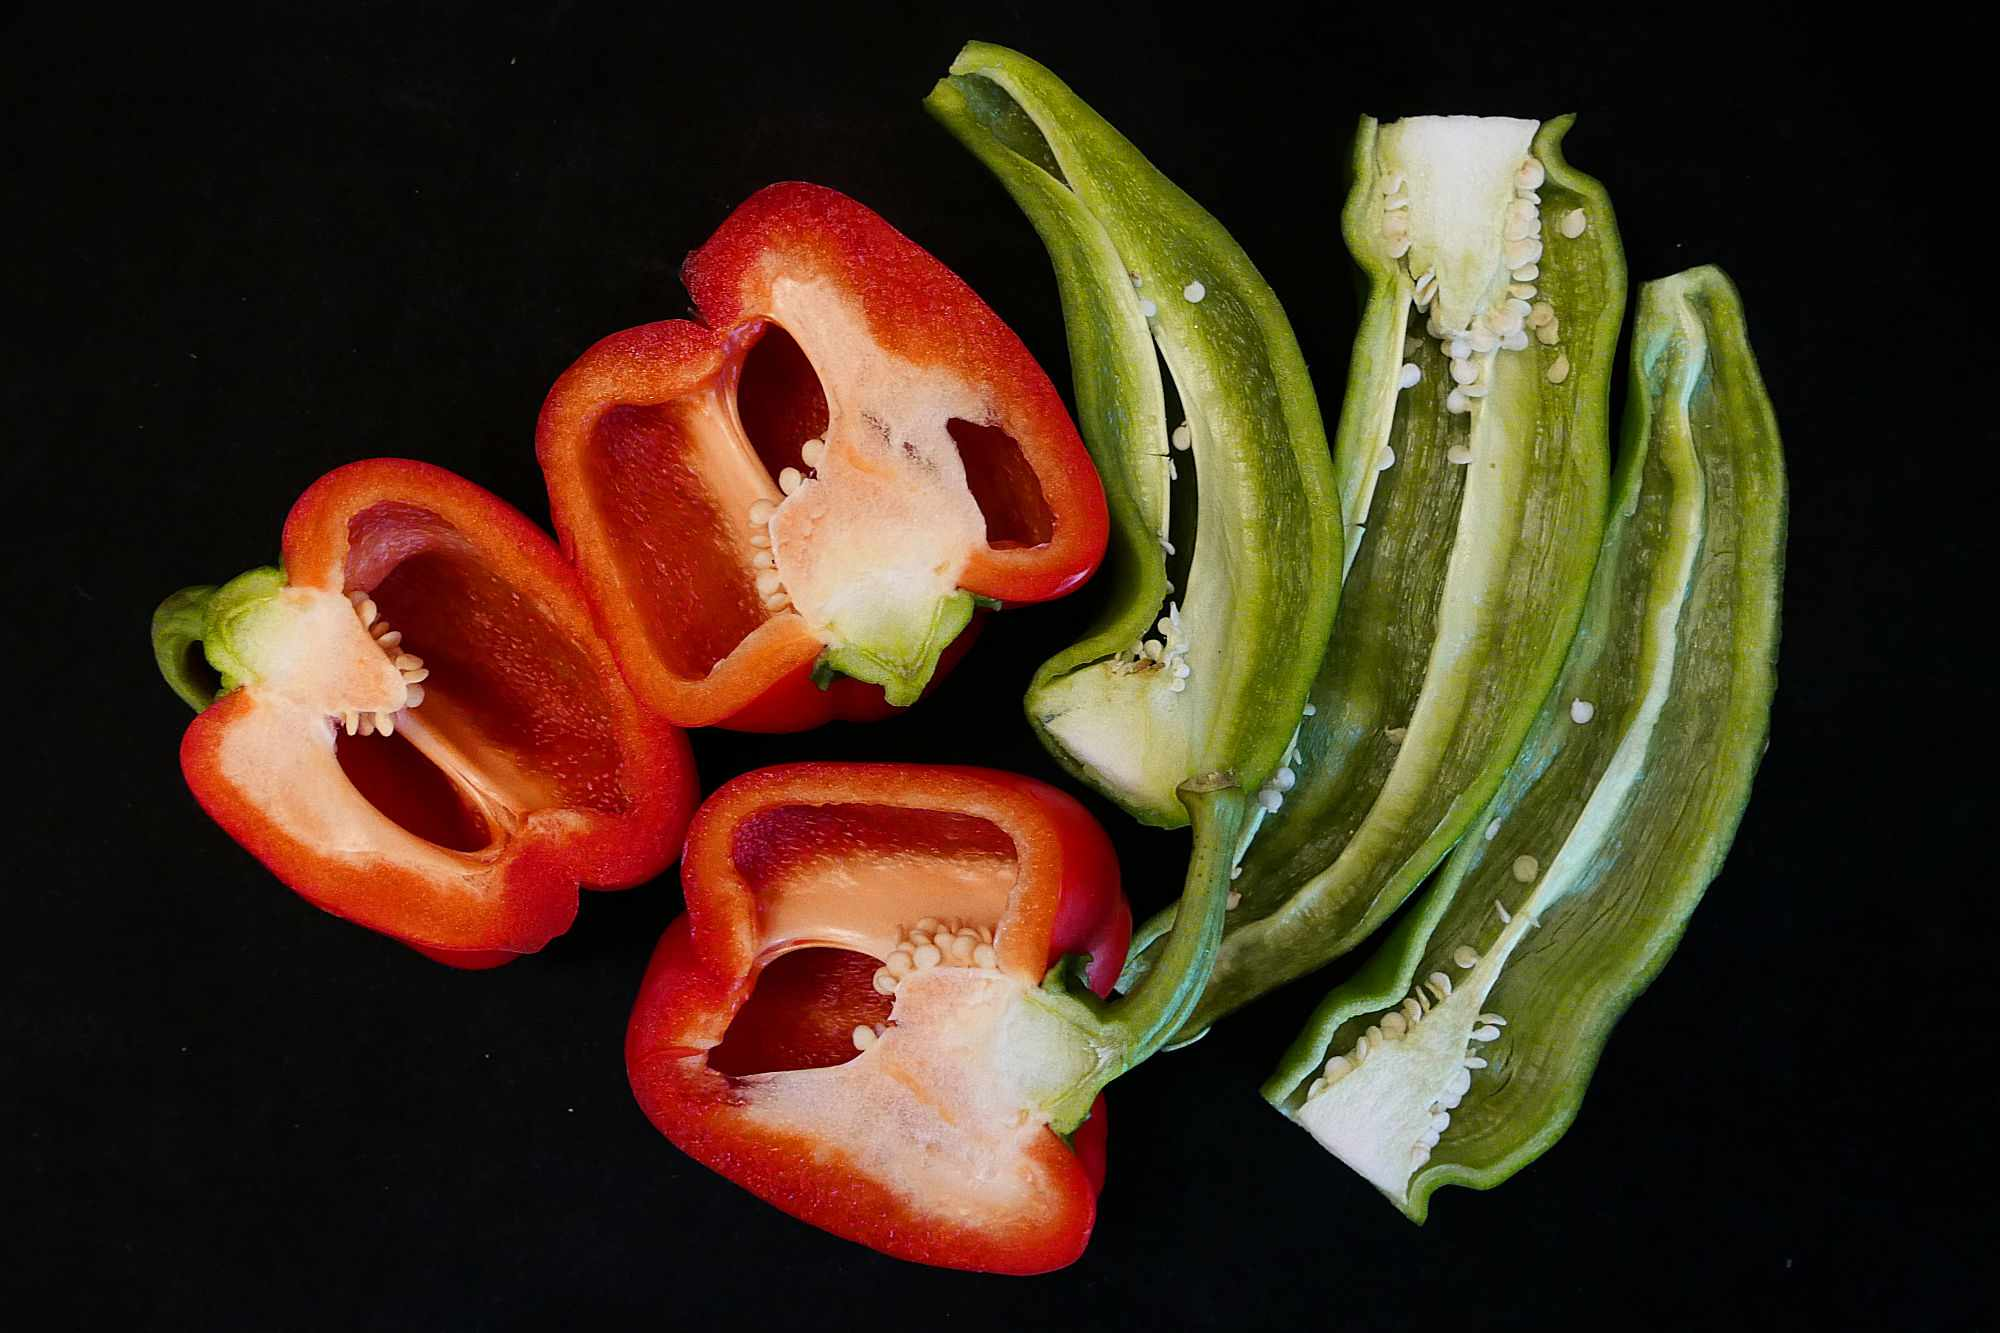 Peppers cut in half against black background.